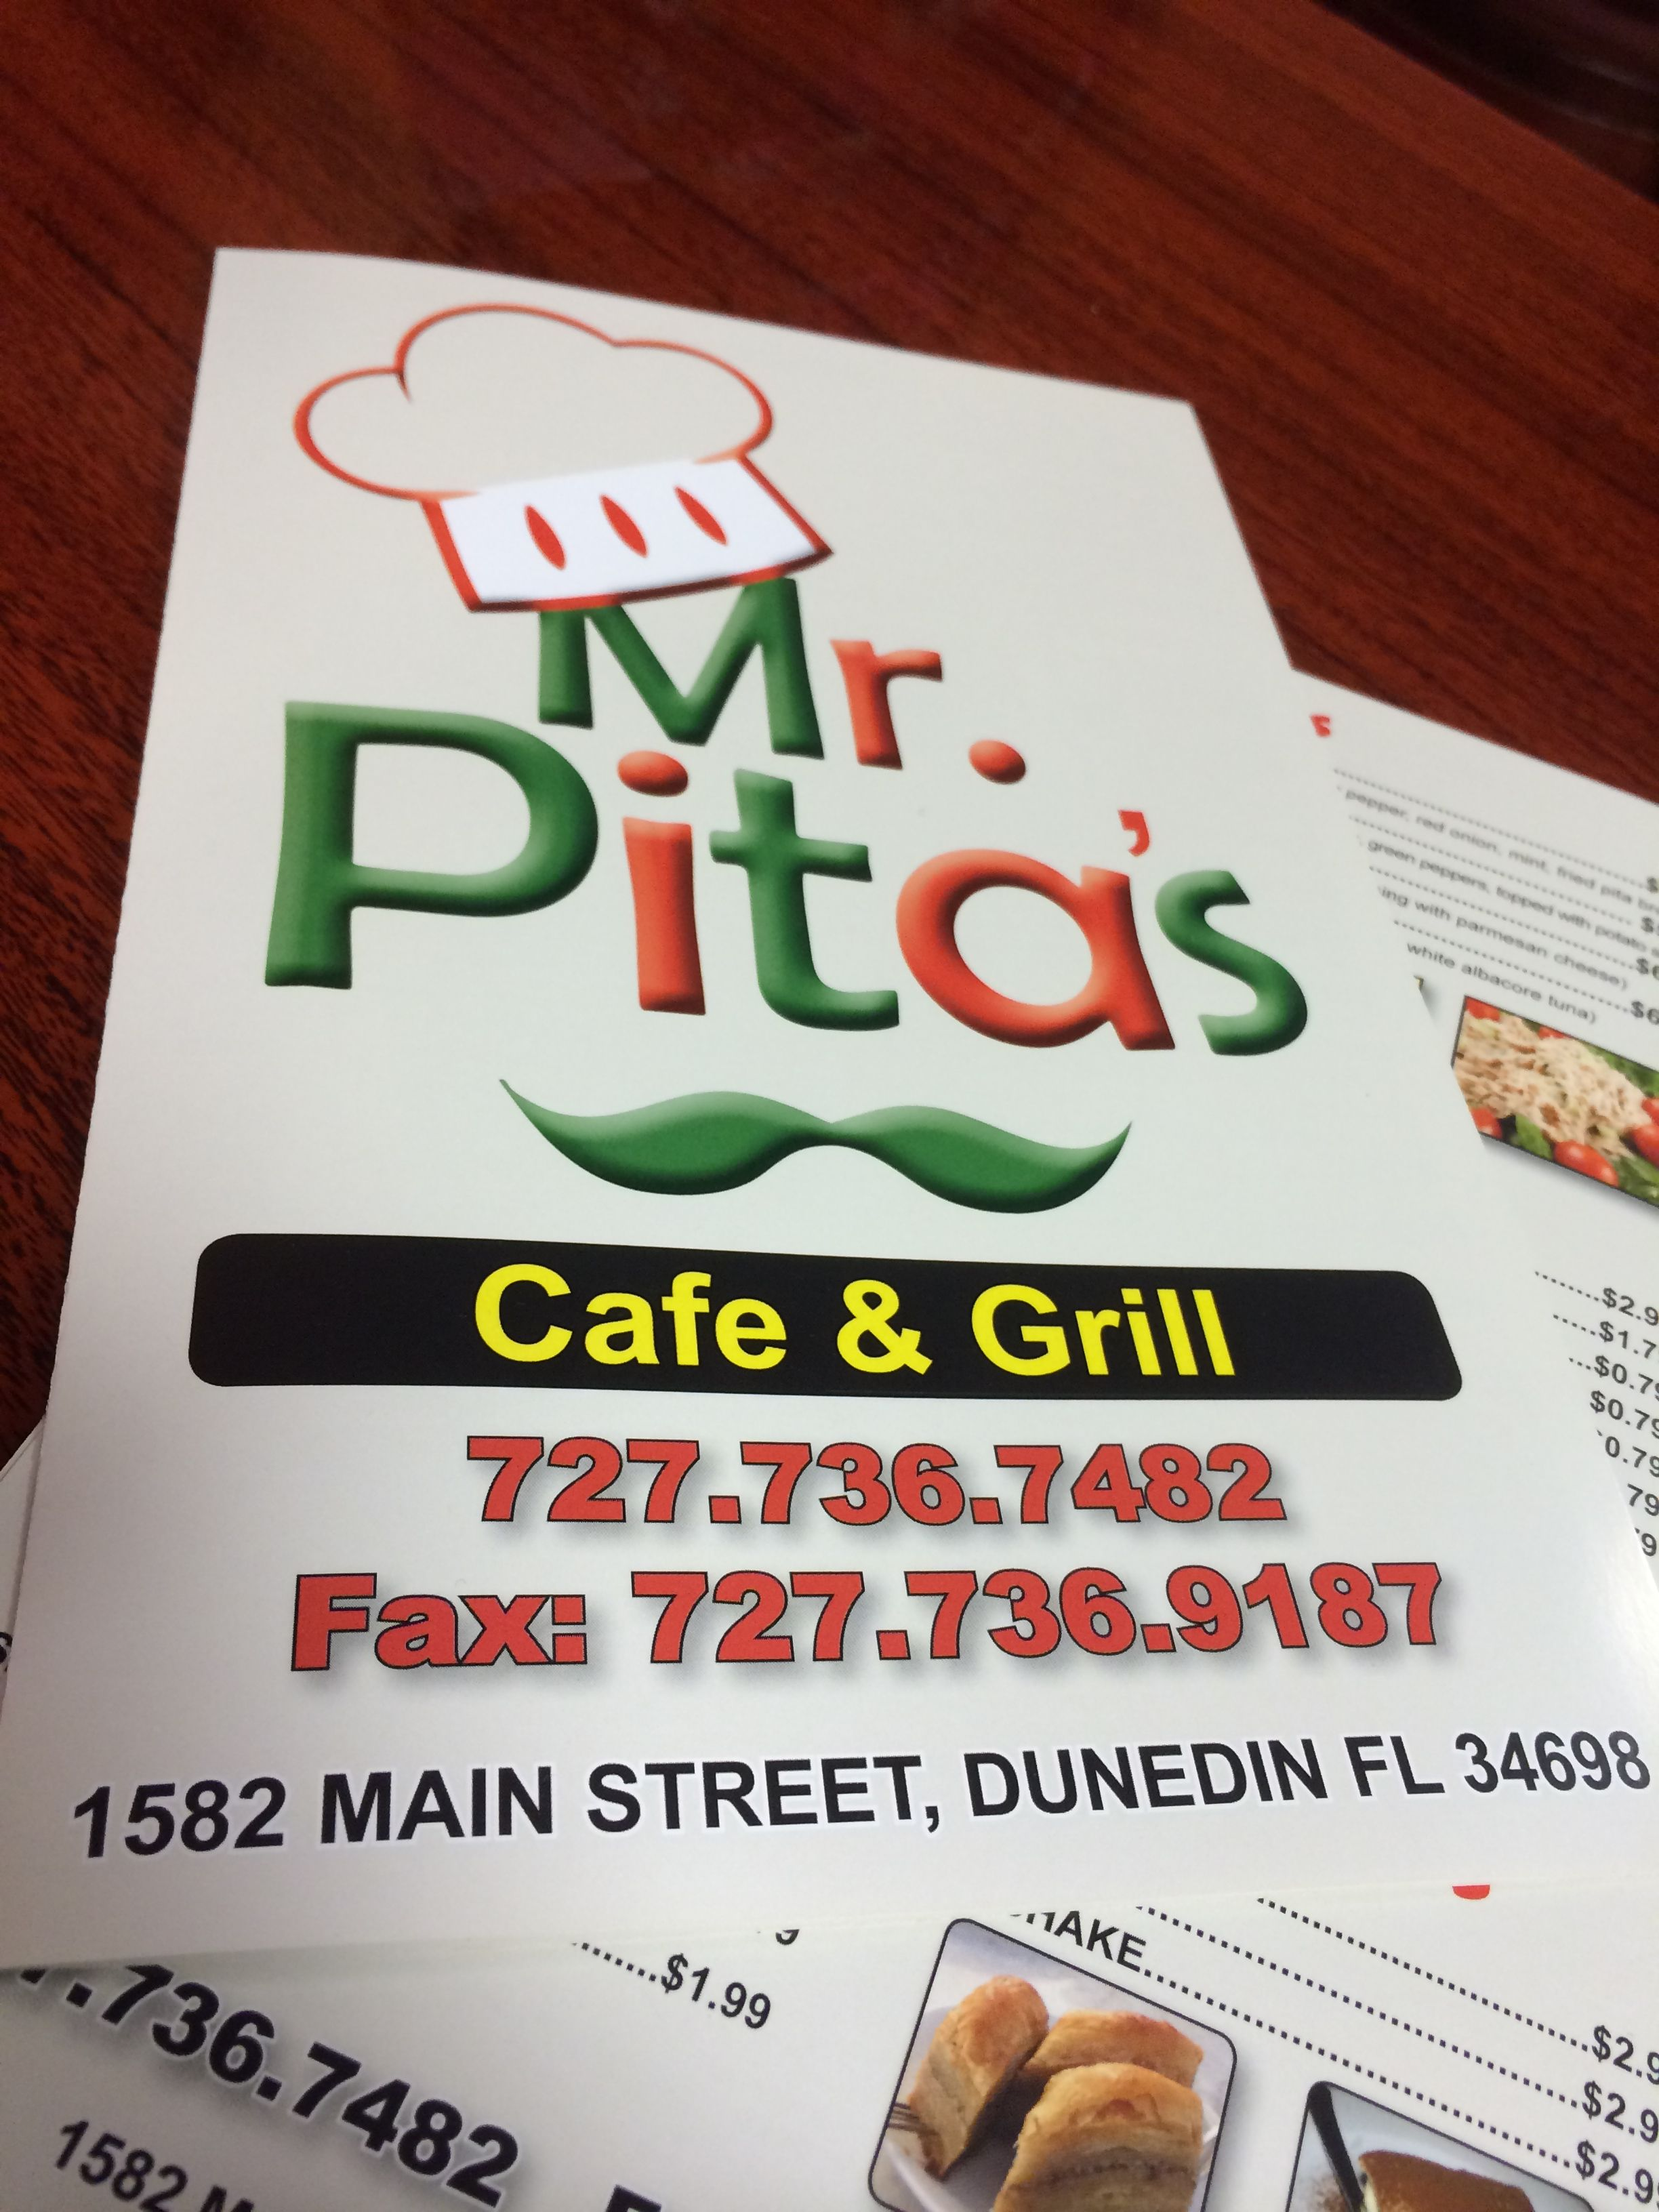 Good place to try if you in dunedin florida dunedin florida